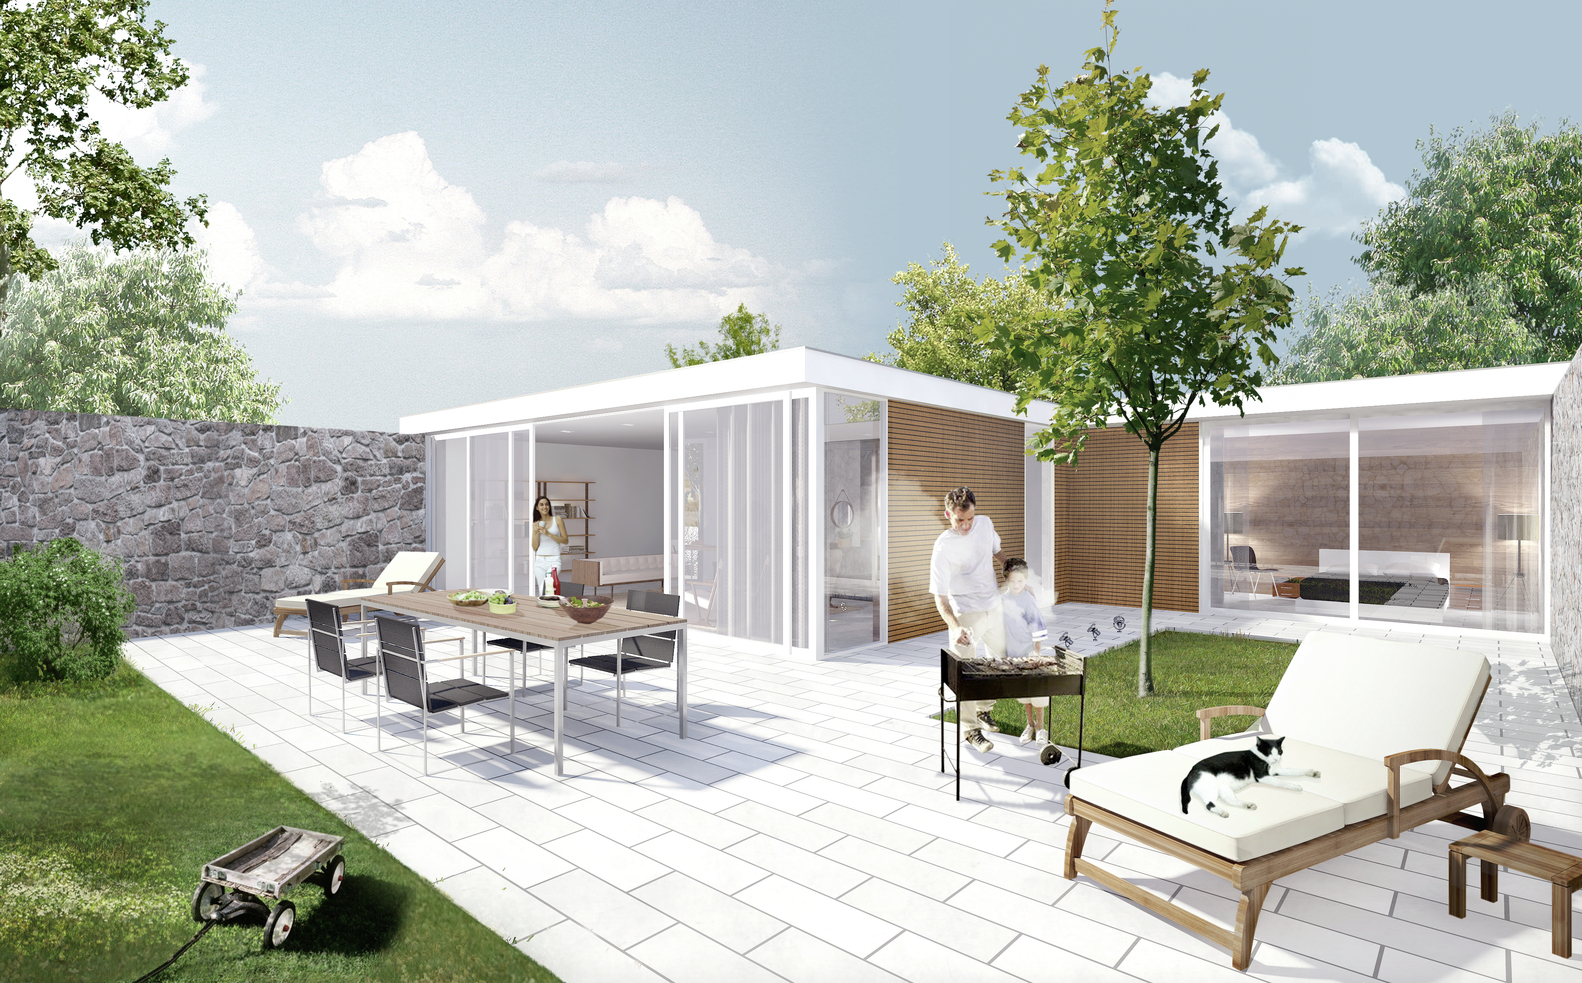 Wonderful Being Home / Being Development,The Patio House